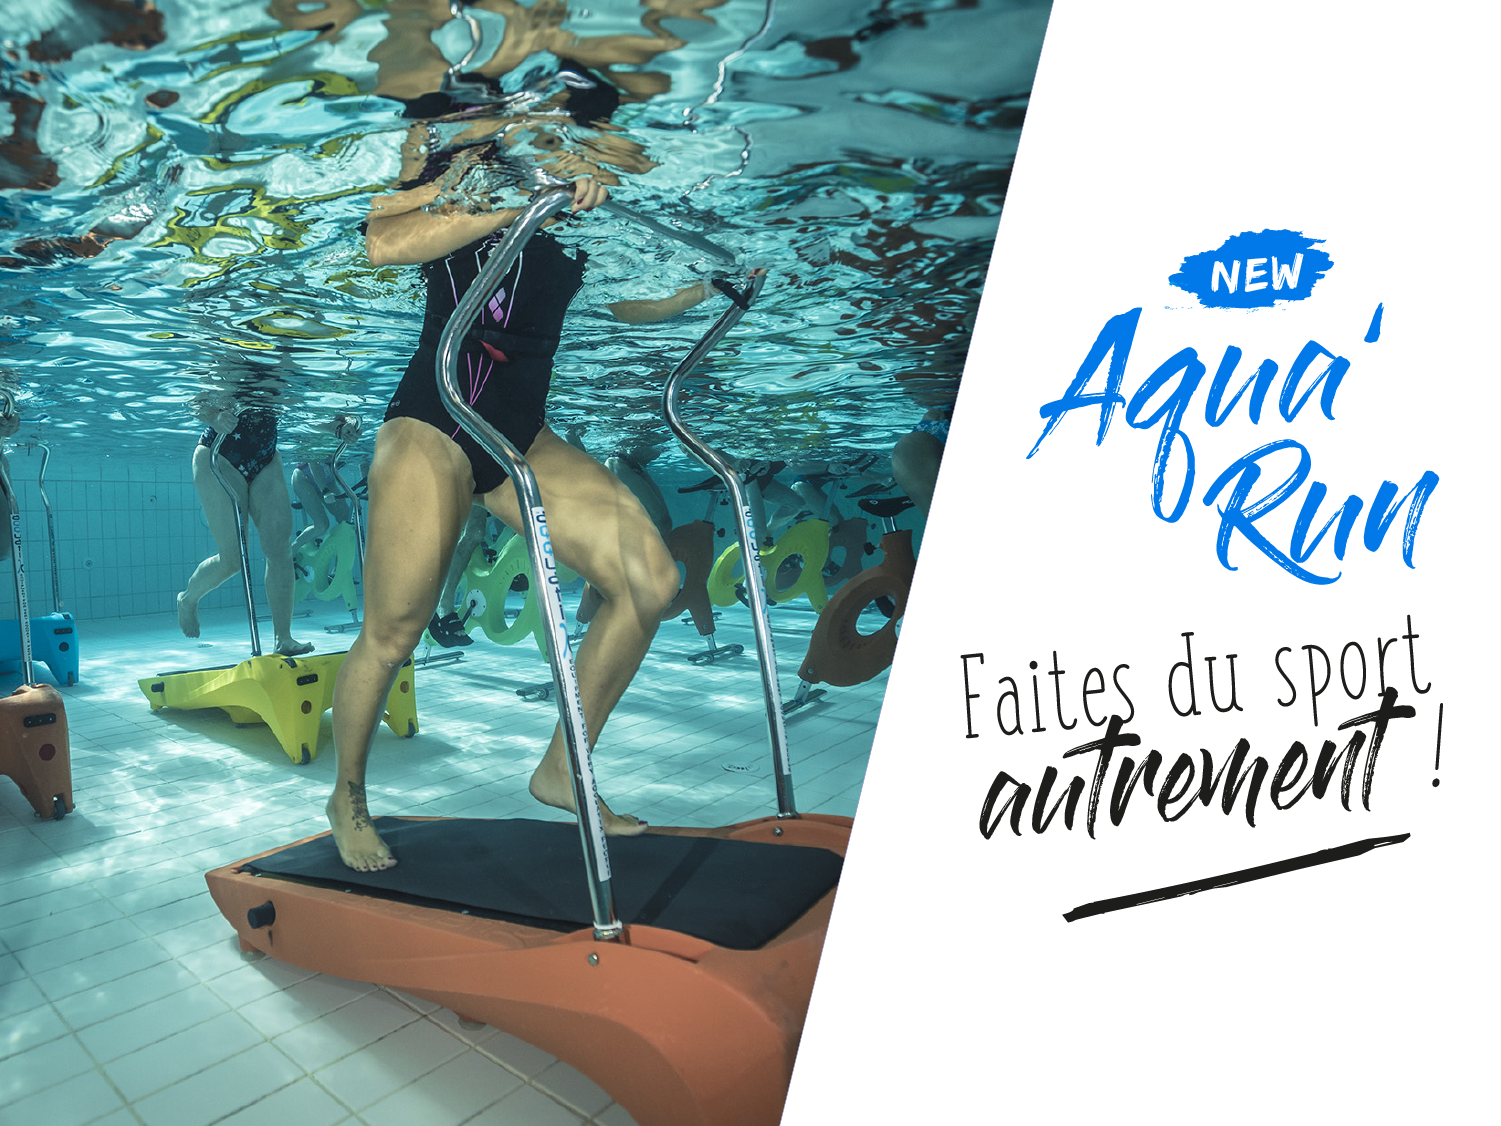 Aquavilla aquarun, tapis de course aquatique